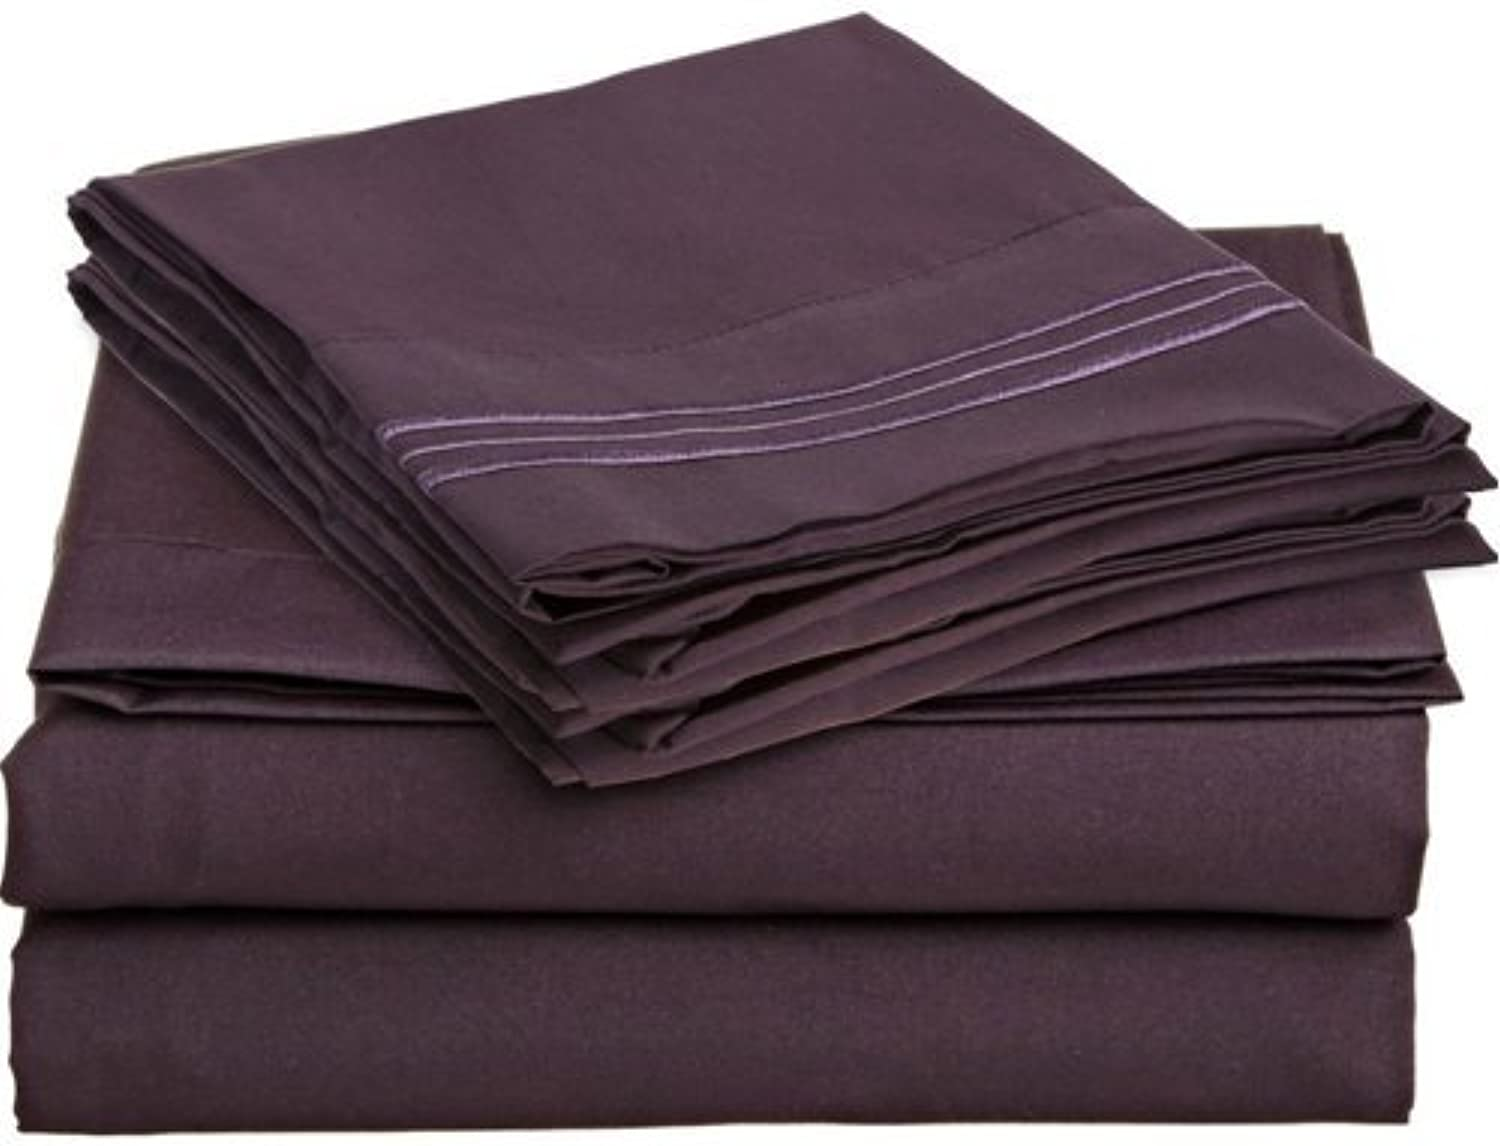 Royal Collection 1900 King Size Thread Count Bamboo Quality Bed Sheet Set Fitted, 1 King Flat and 2 King Pillow Case.Wrinkle Free Shrinkage Free Fabric, Deep Pockets (King Size, Plum Purple)